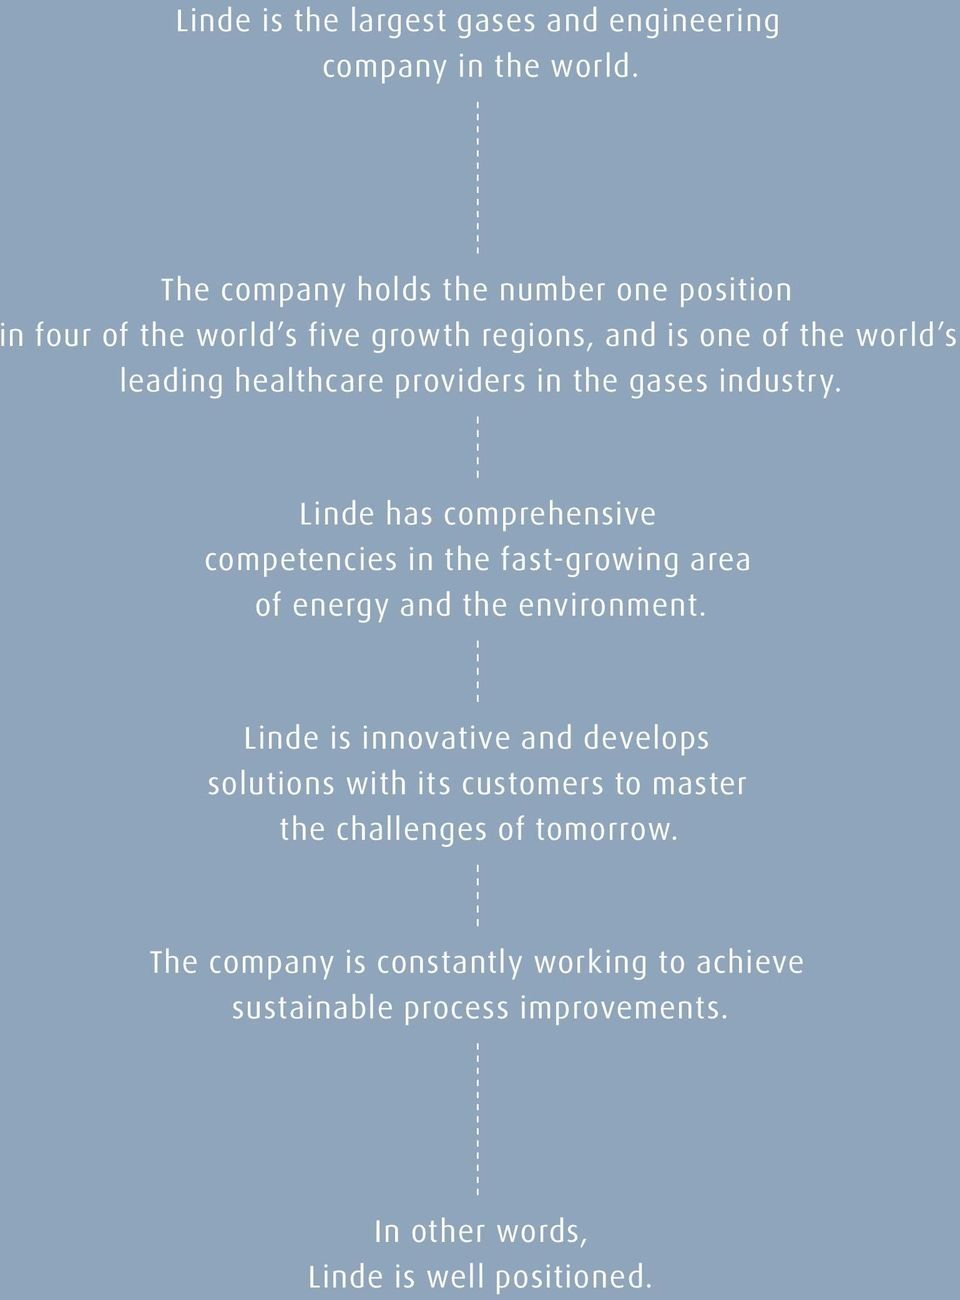 providers in the gases industry. Linde has comprehensive competencies in the fast-growing area of energy and the environment.